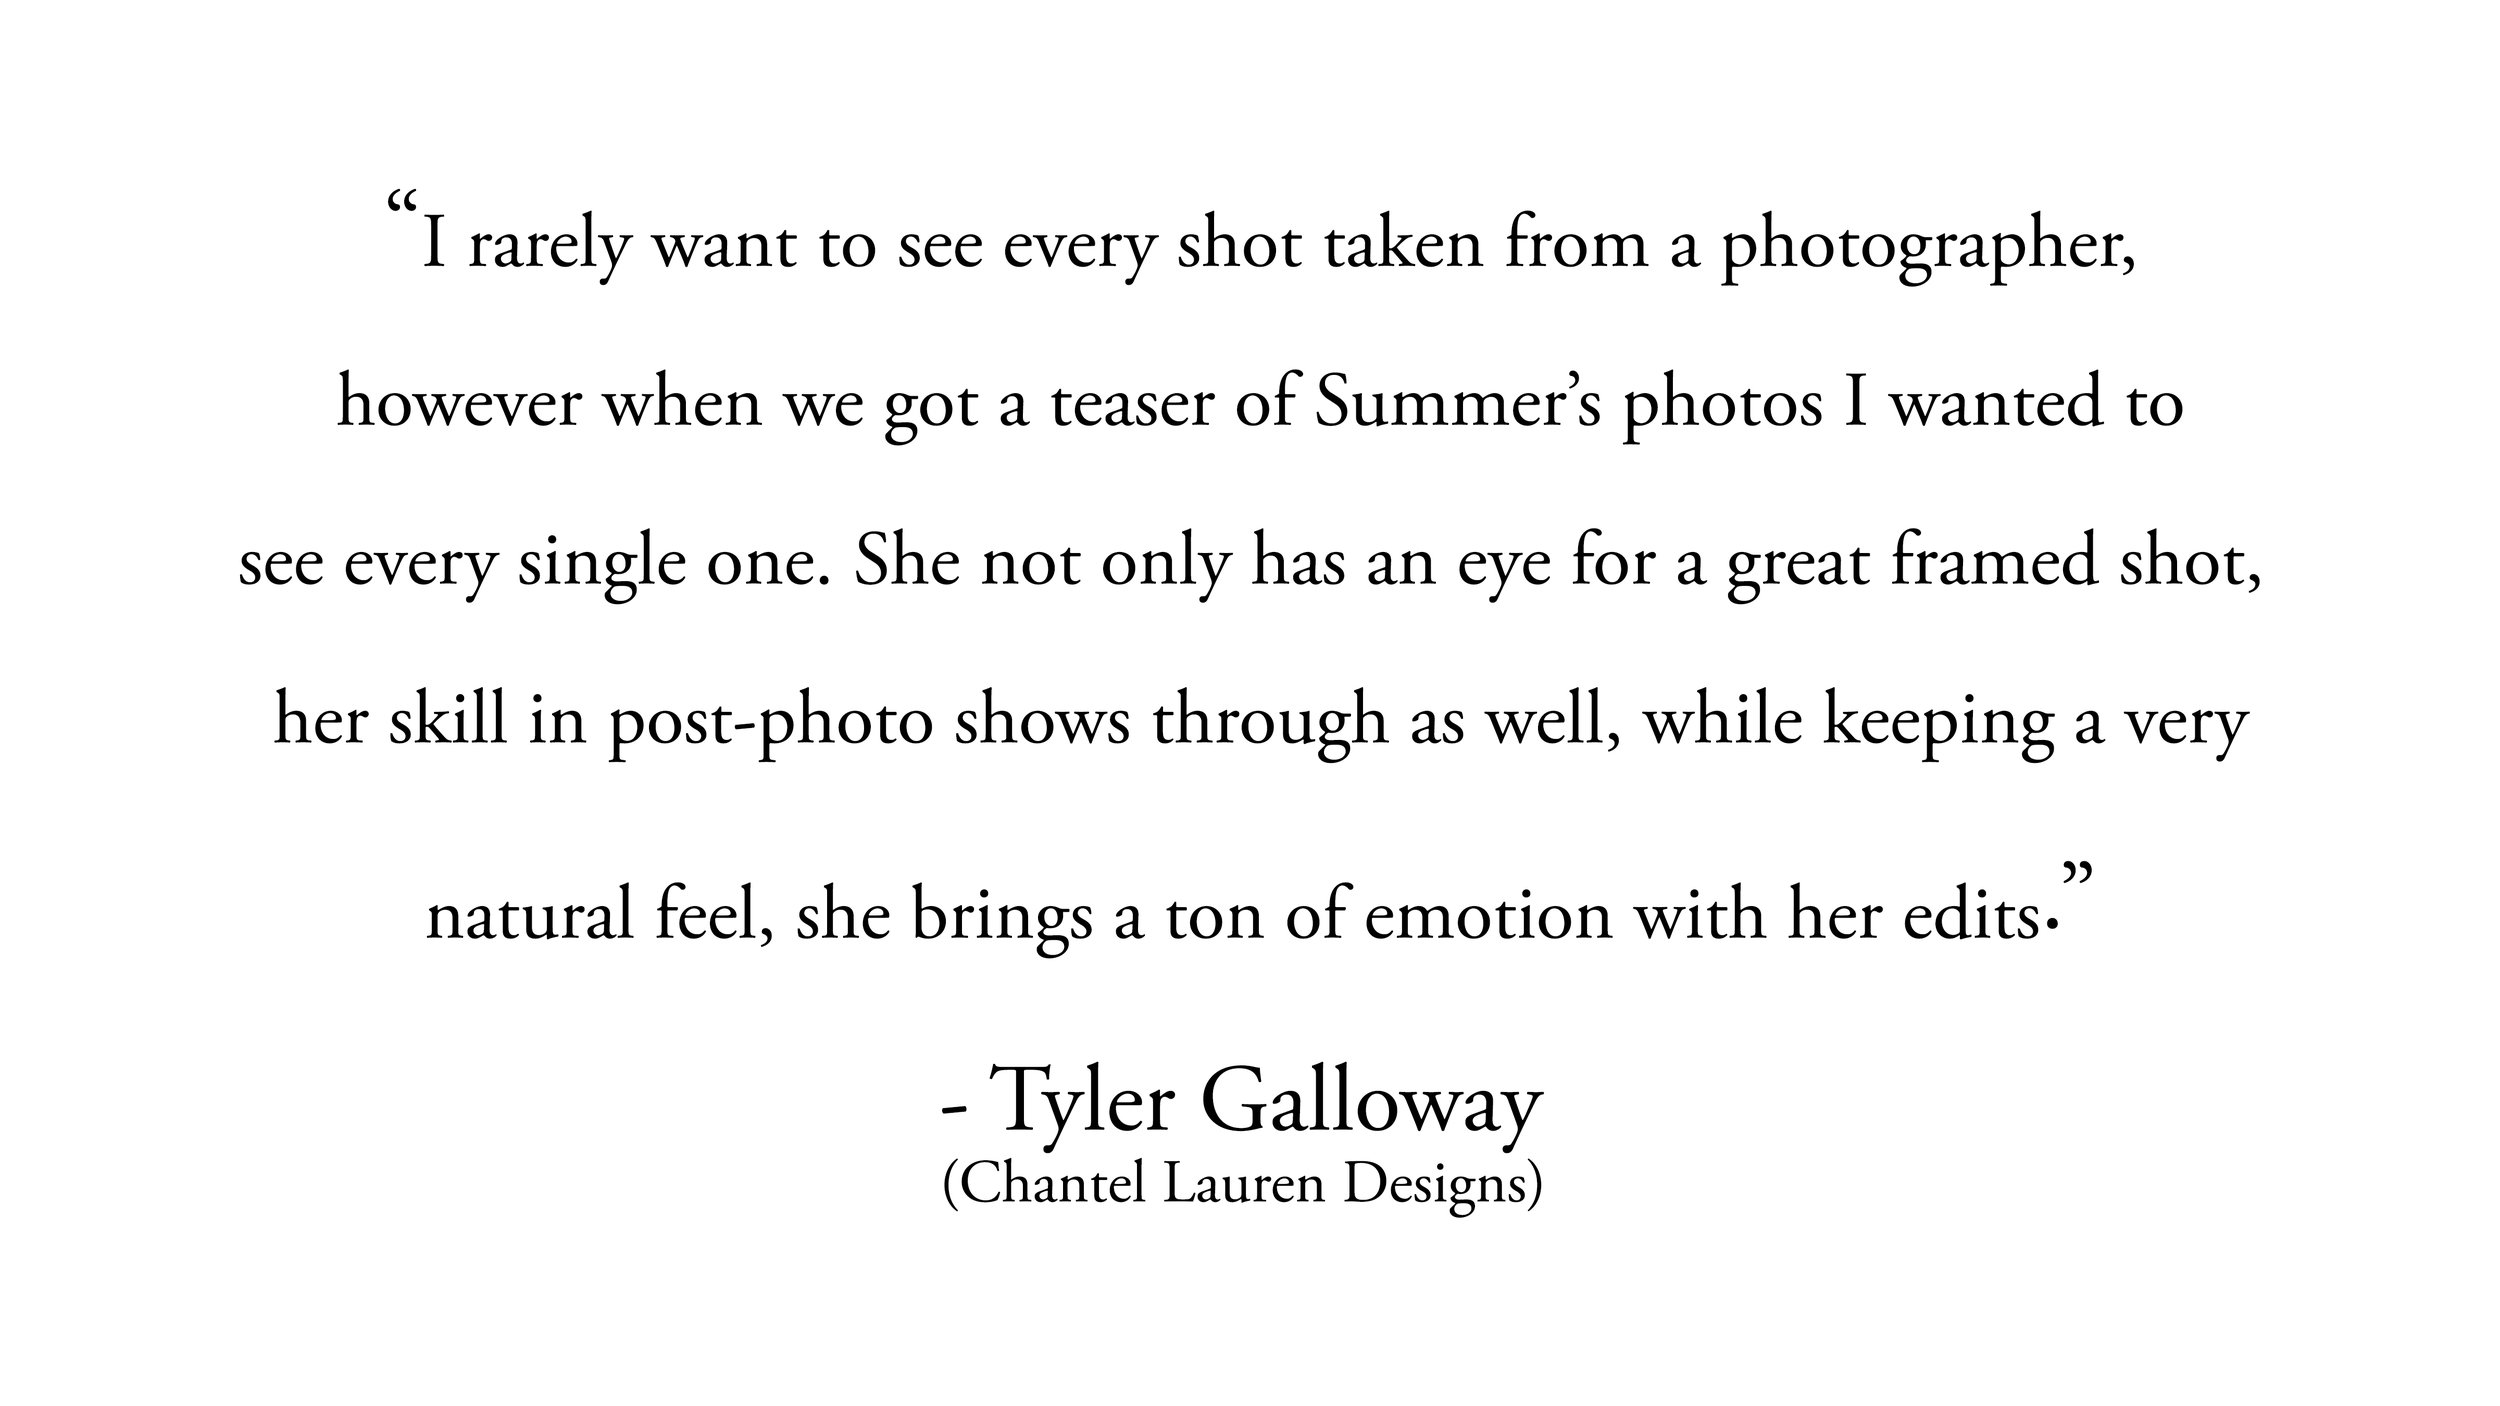 review tyler gallowayjpg.jpg